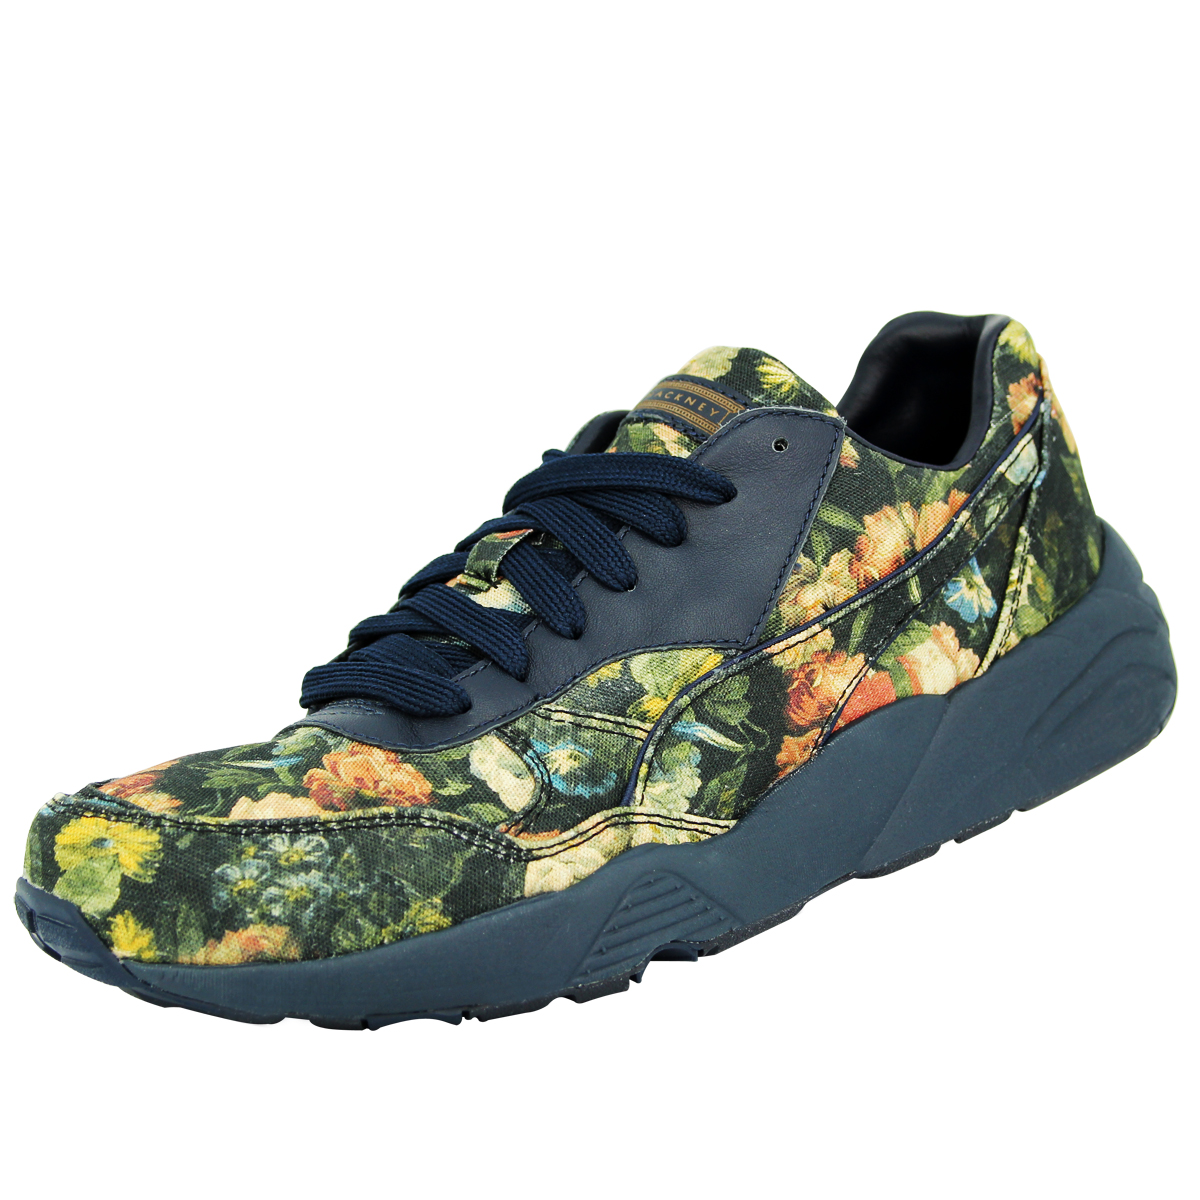 Puma R698 EVO X HOH pink shoes Mode Sneakers Femme Multicolor